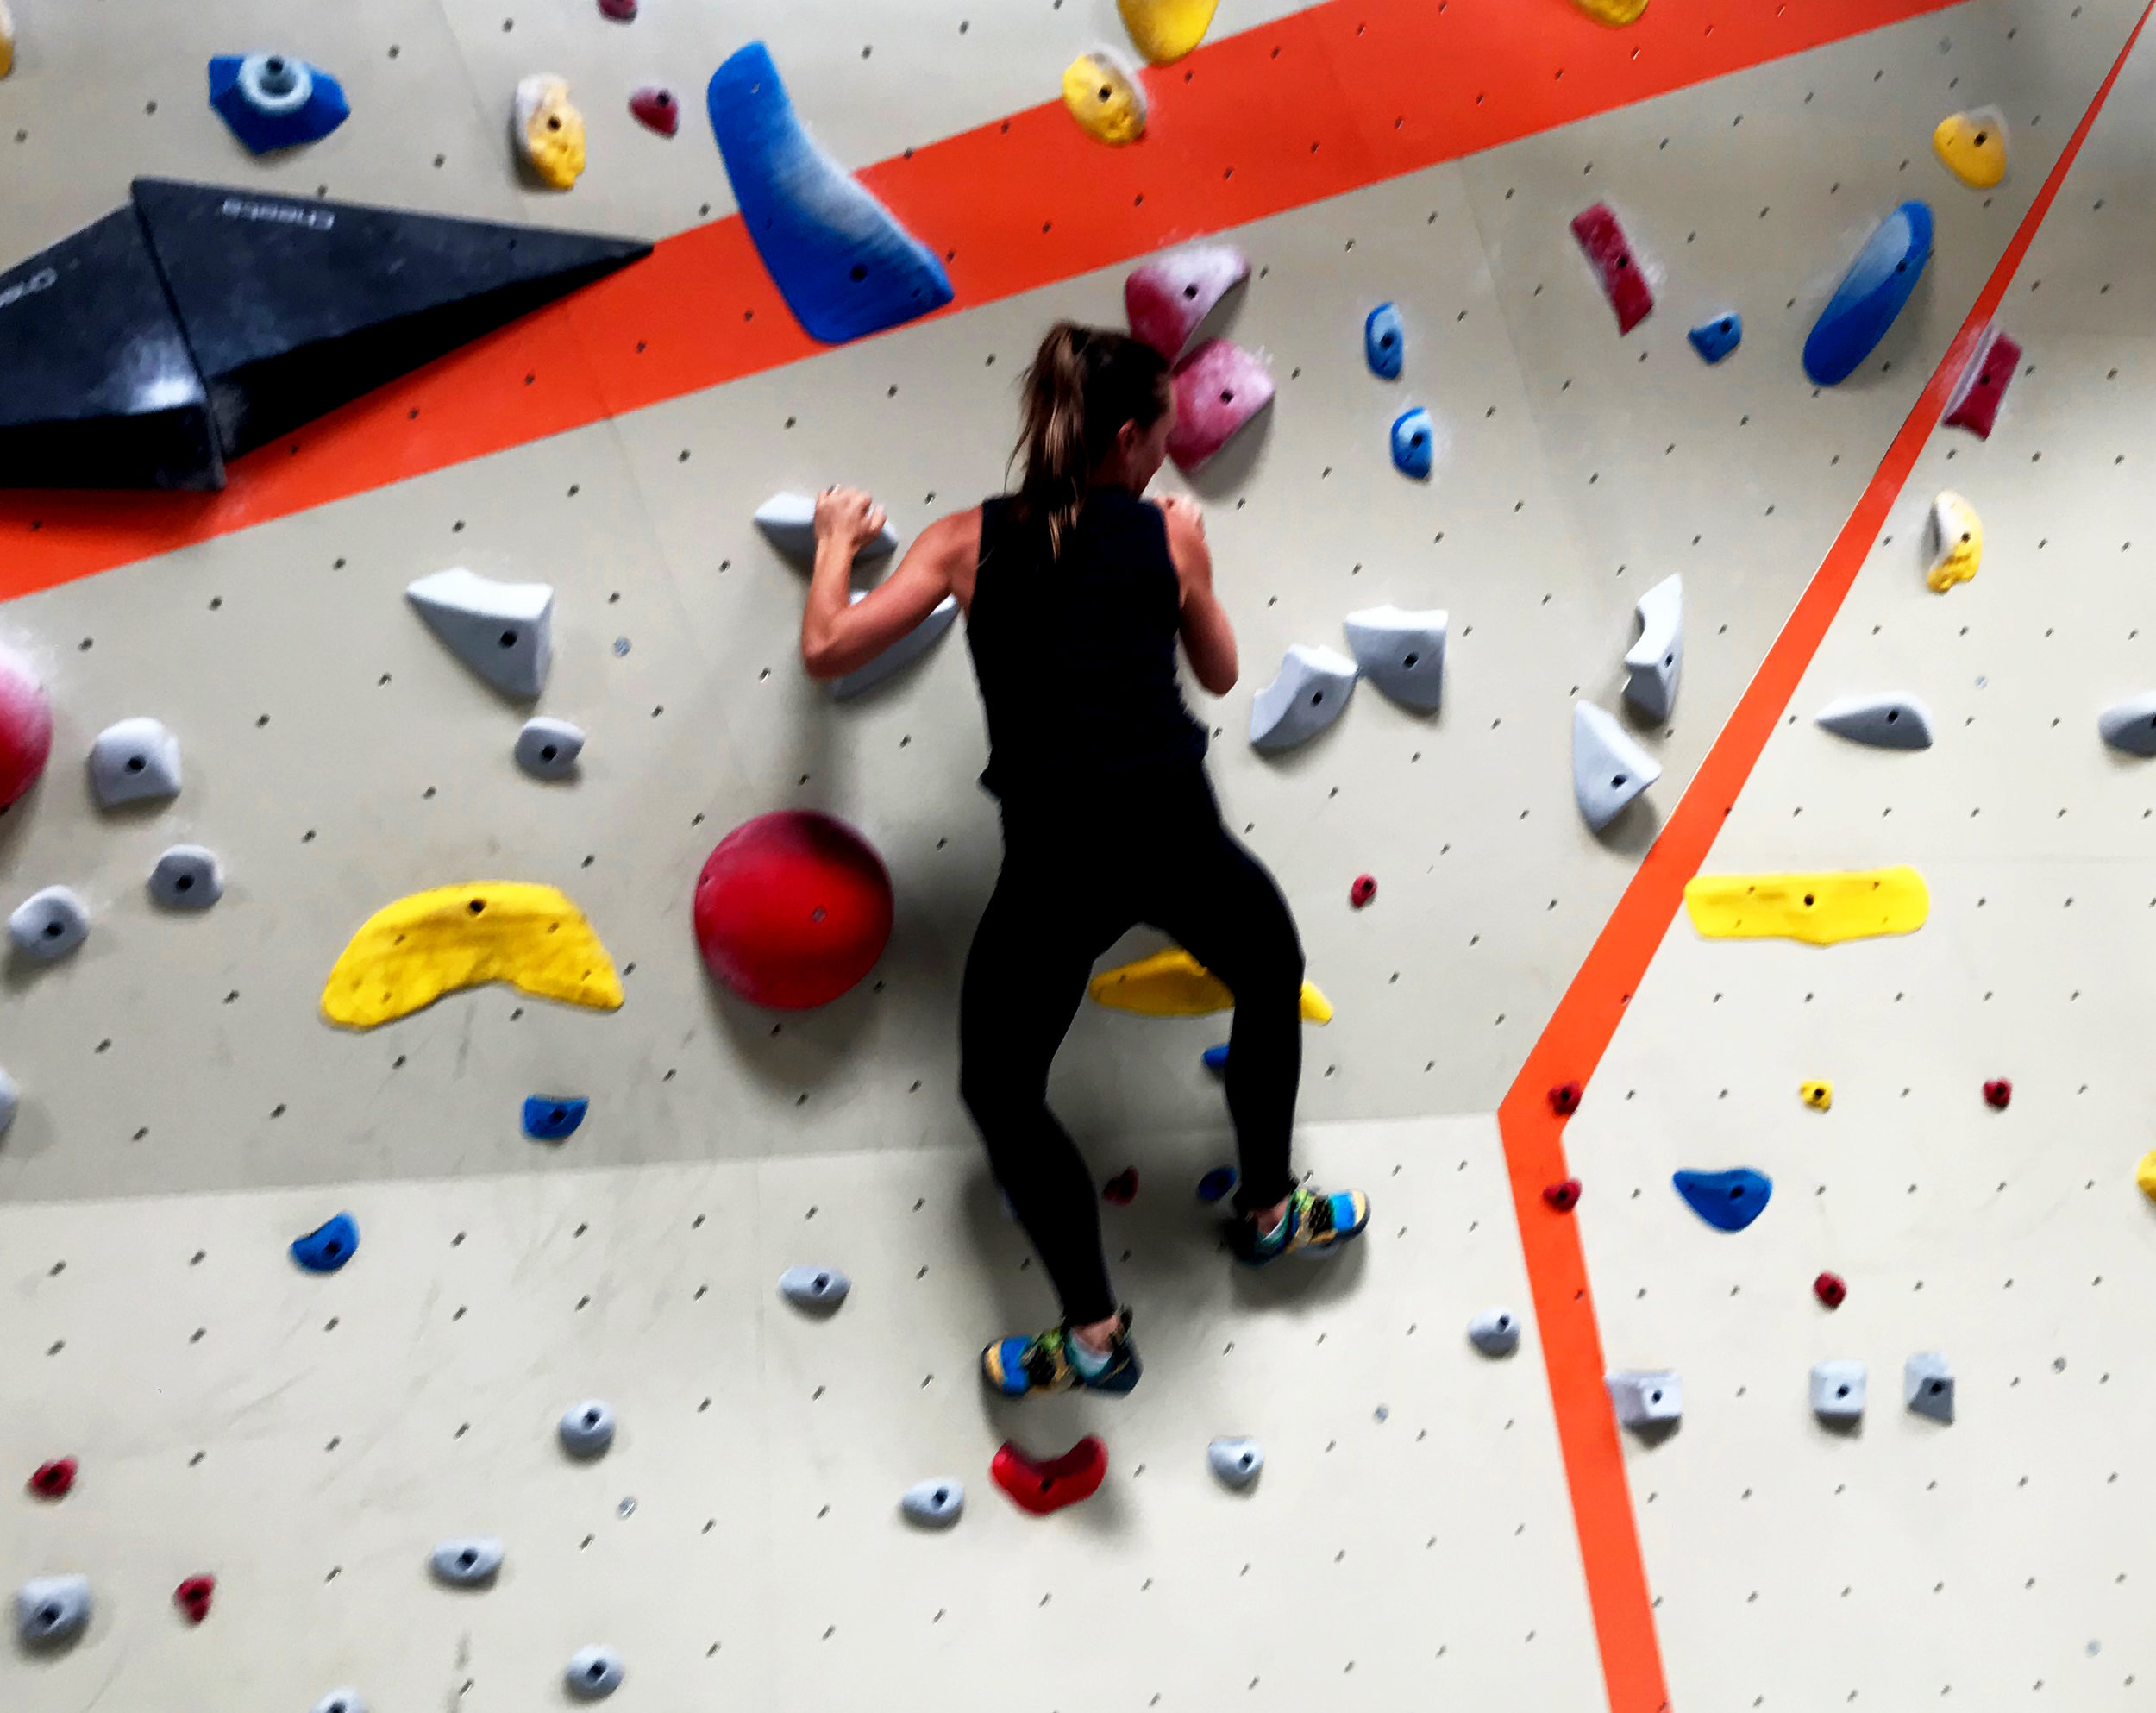 Bouldering at Movement